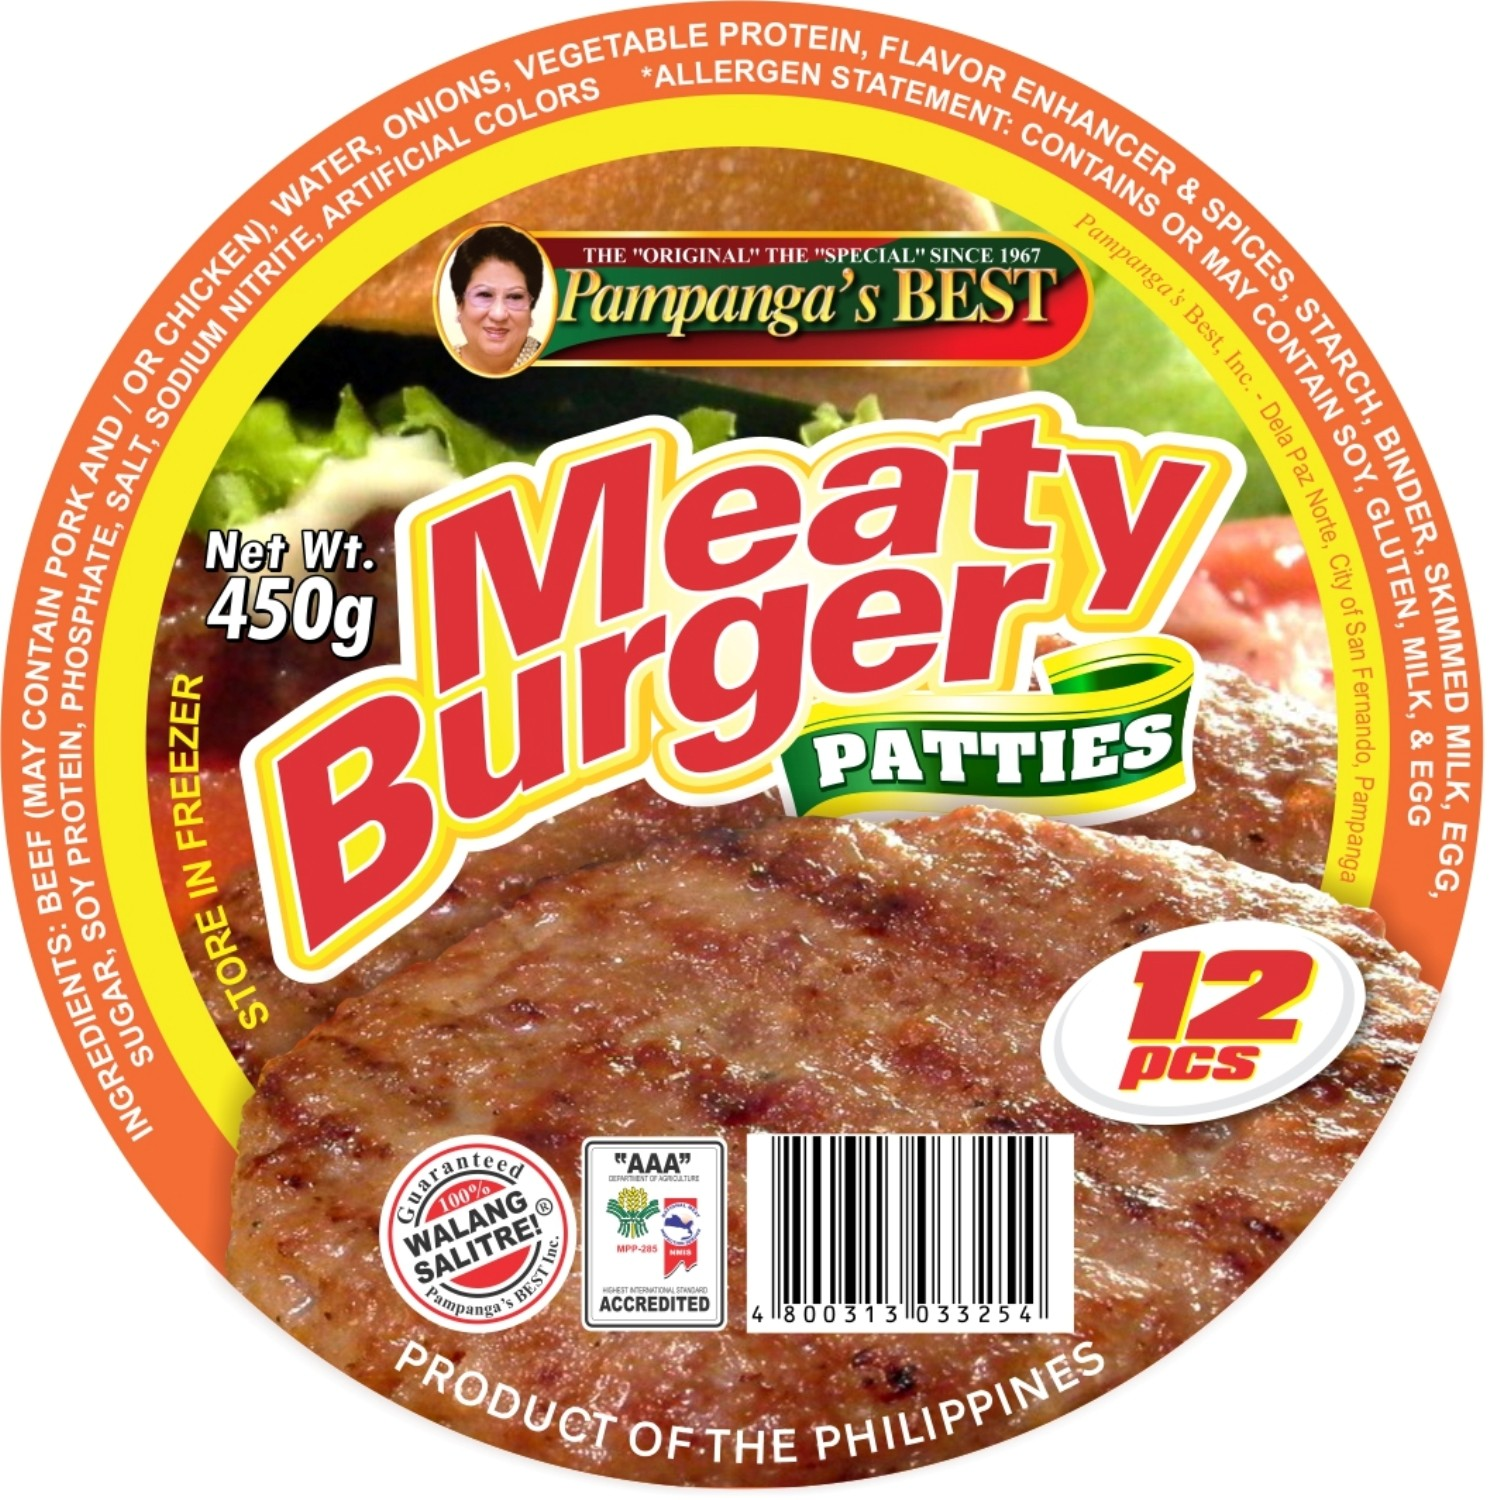 Meaty Burger - 12pcs